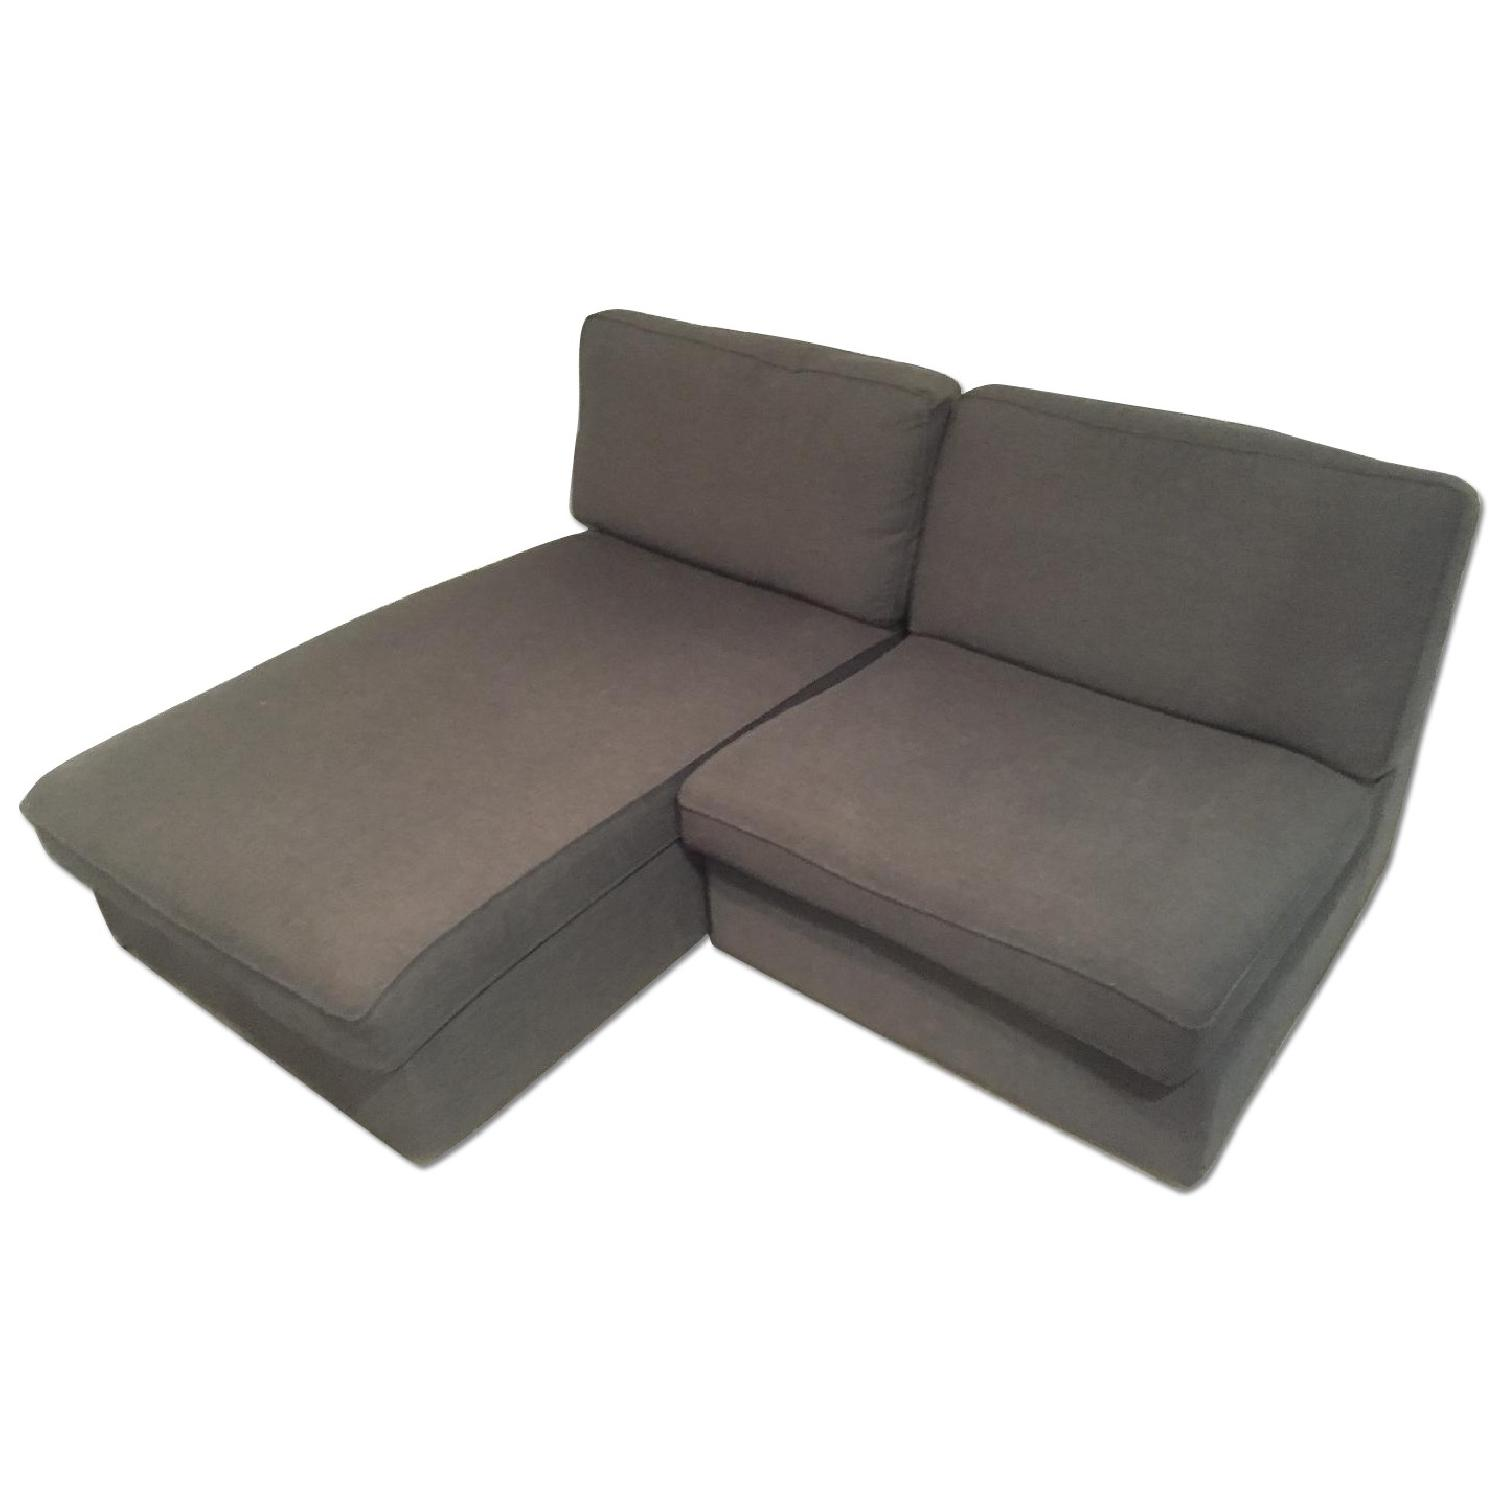 Ikea Kivik Chaise w/ One Seat Section - image-0